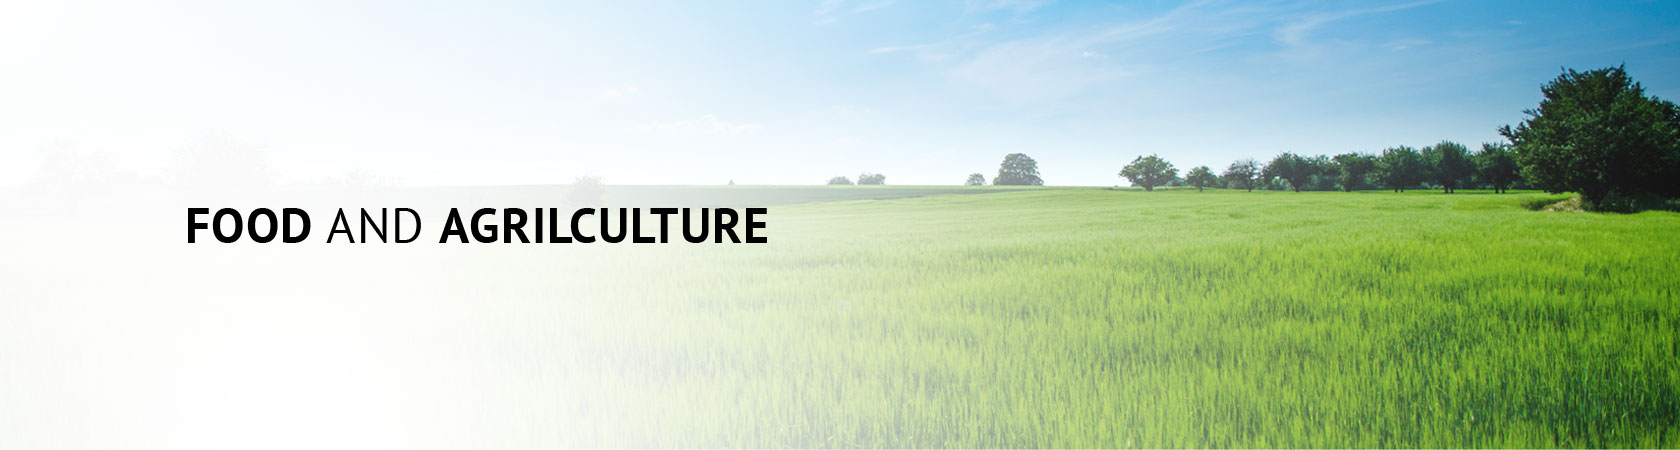 FOOD AND AGRILCULTURE